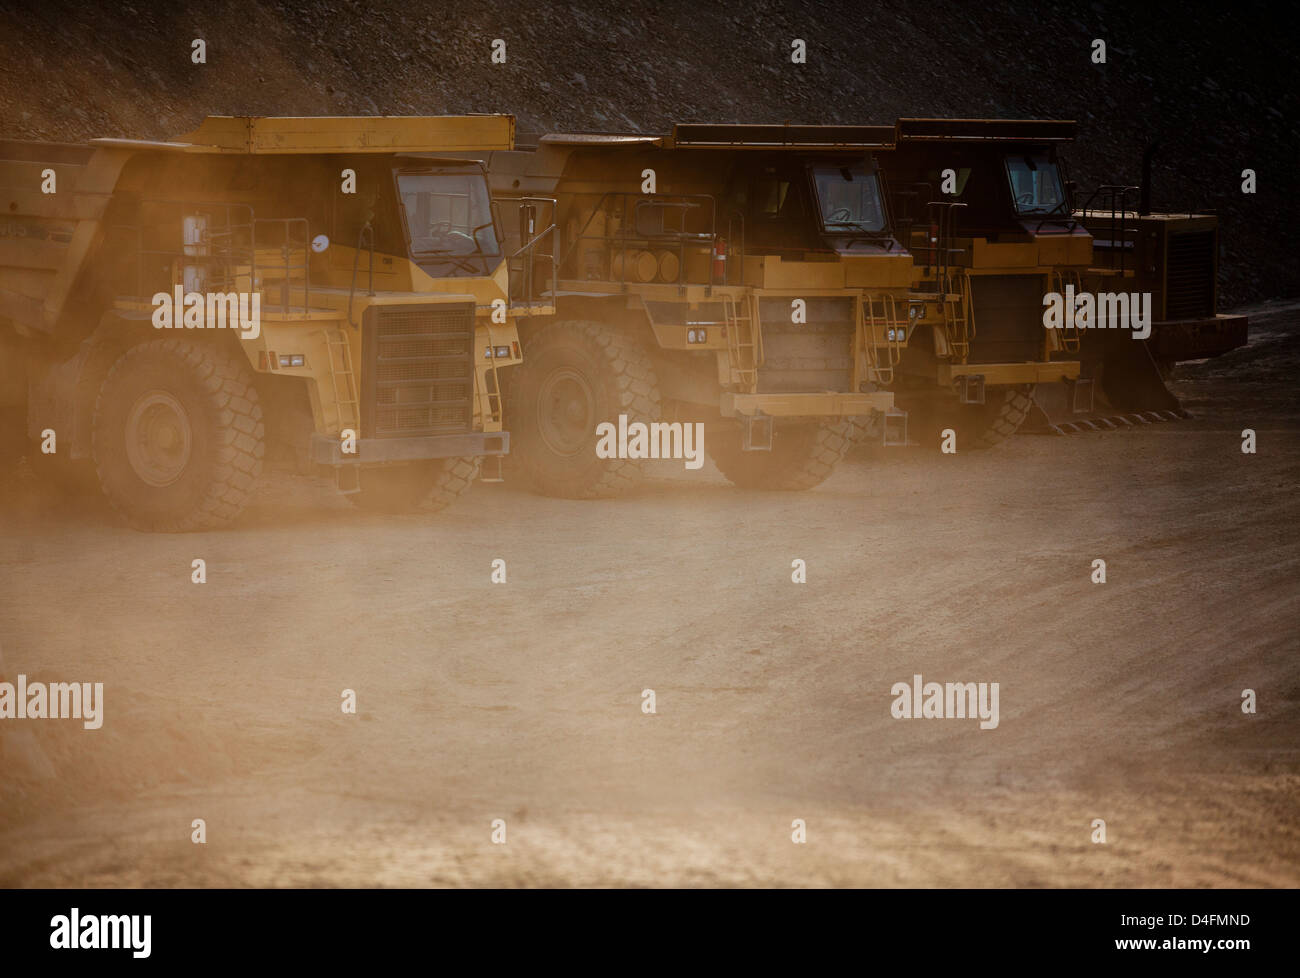 Trucks parked on road in quarry - Stock Image